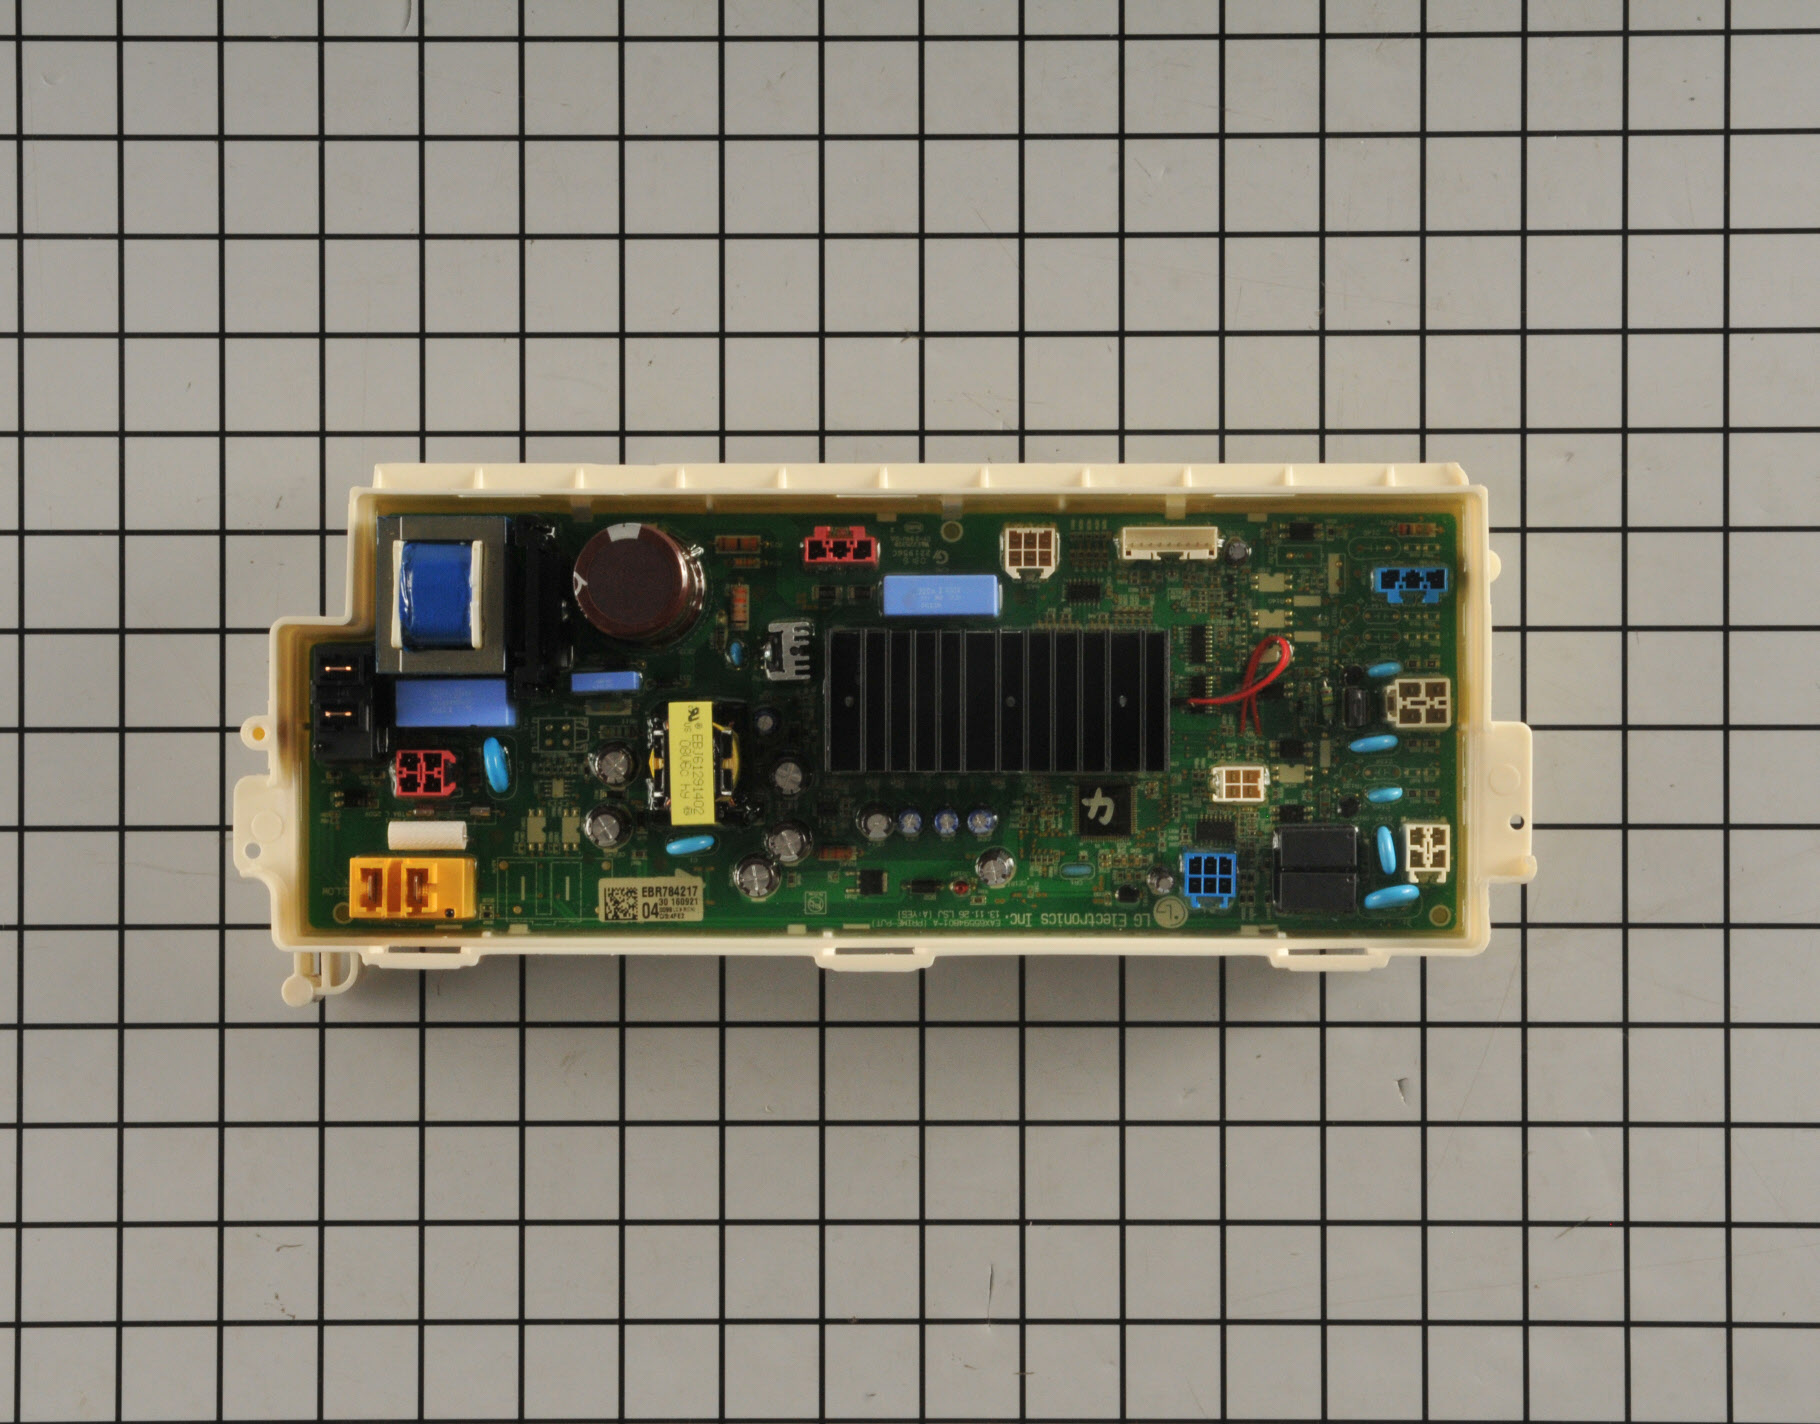 LG Washing Machine Part # EBR74798619 - Main Control Board